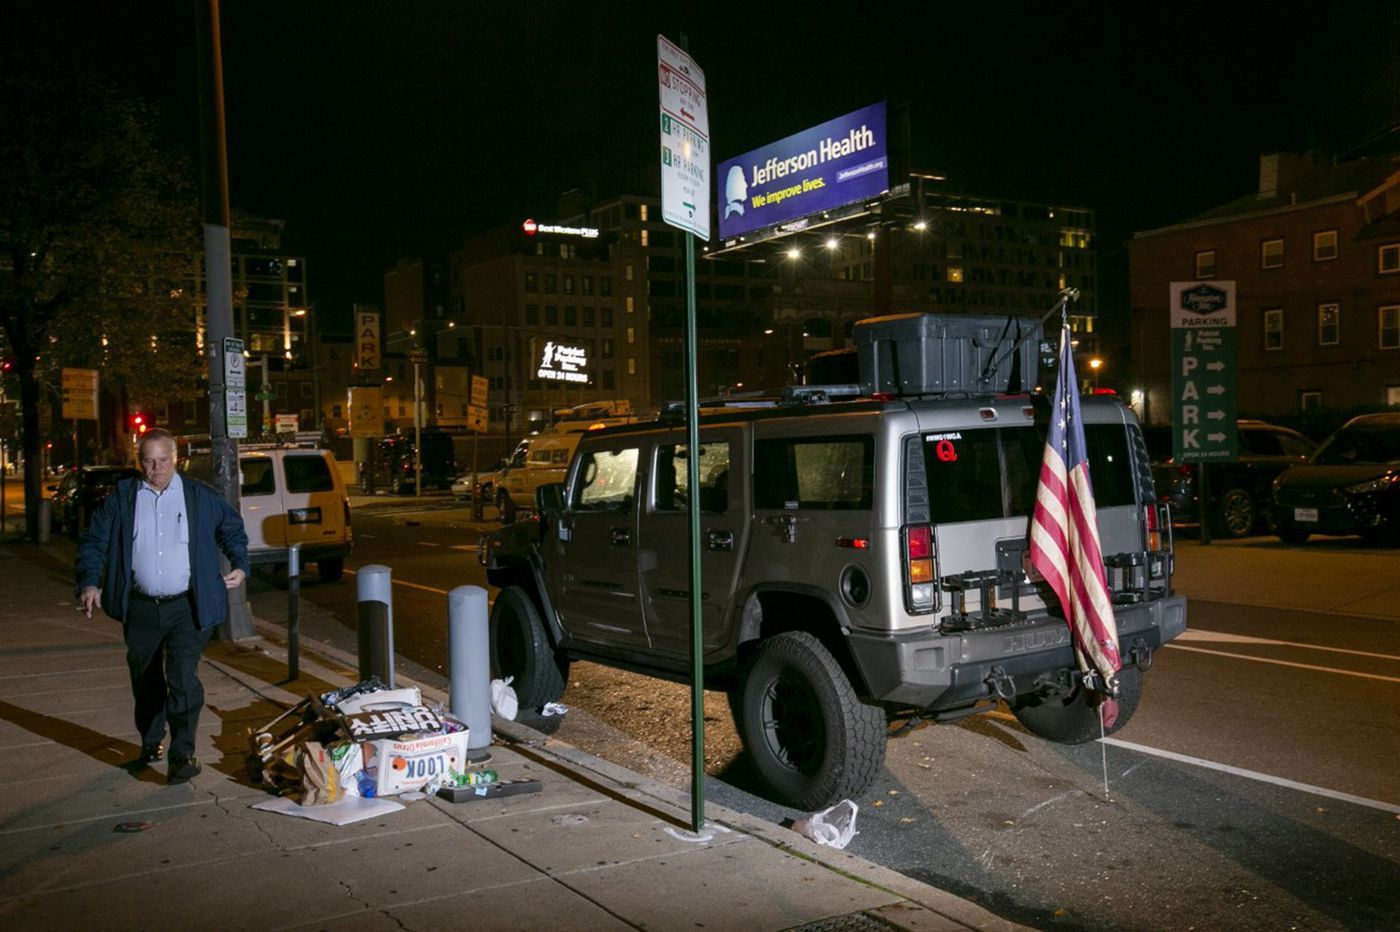 Lawyer says man in Hummer with QAnon stickers outside Philly vote count never threatened or intended violence